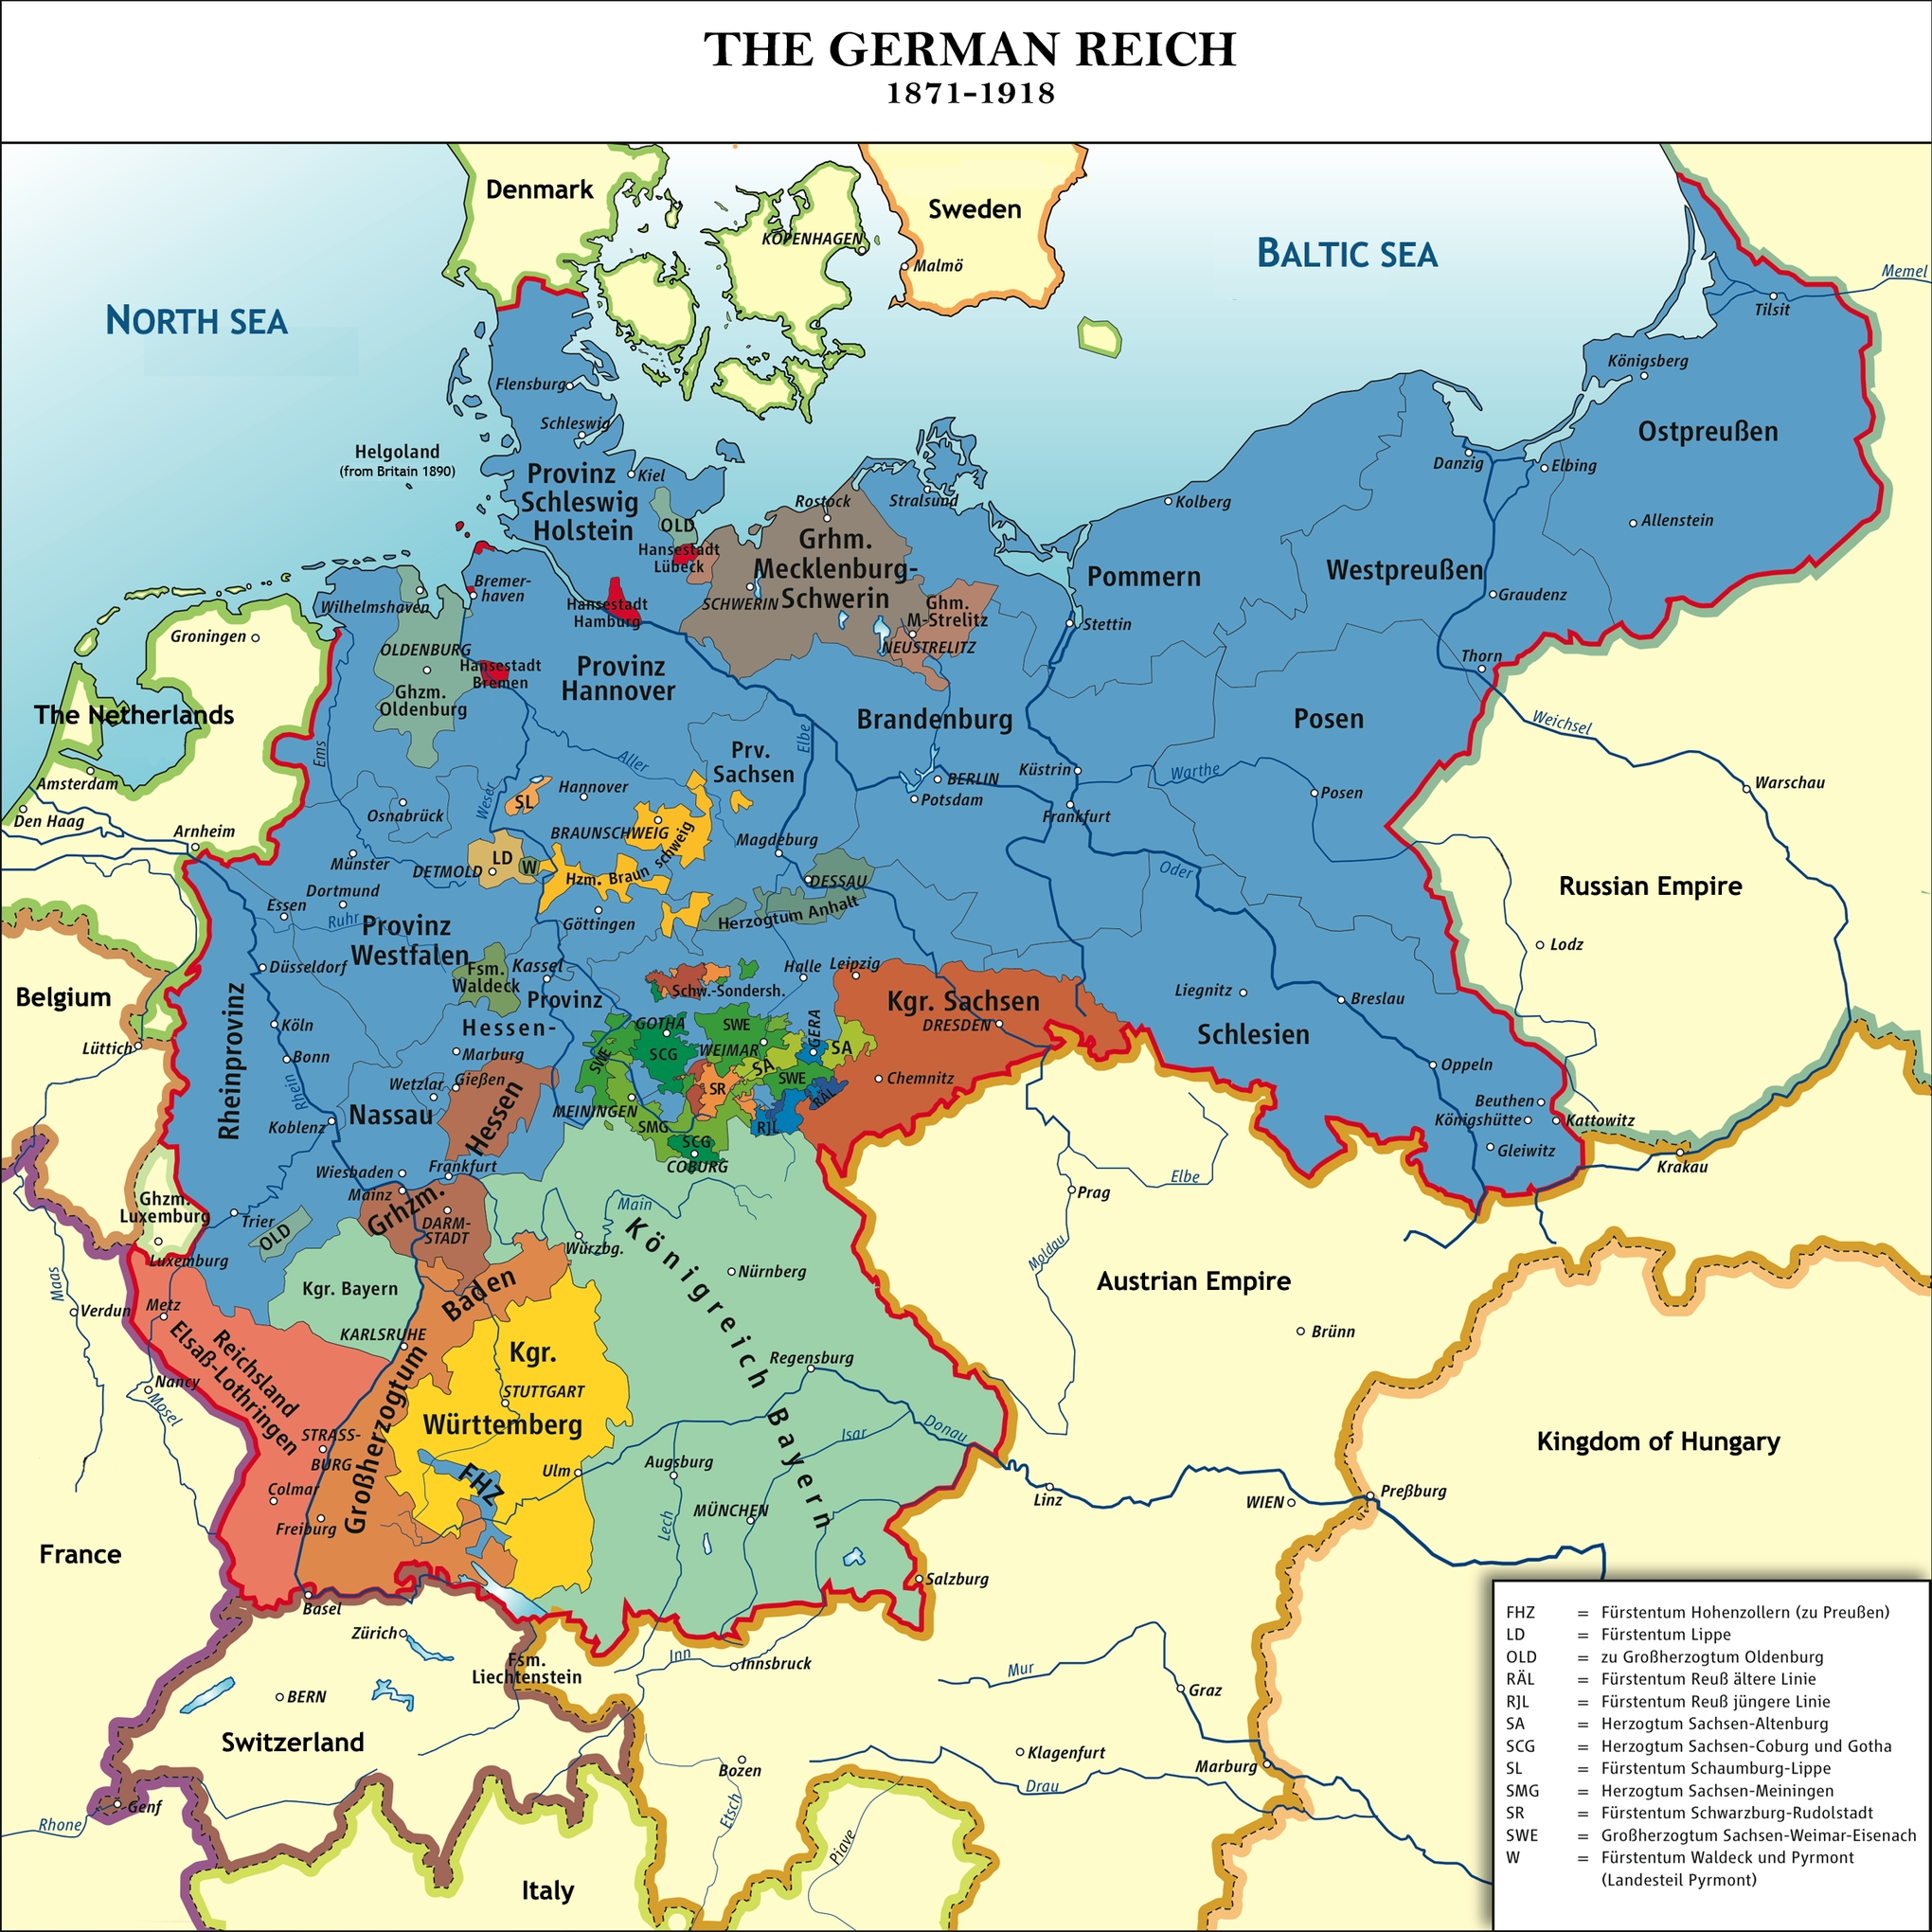 40 Maps That Explain World War I | Vox for Map Of Germany Pre Ww2